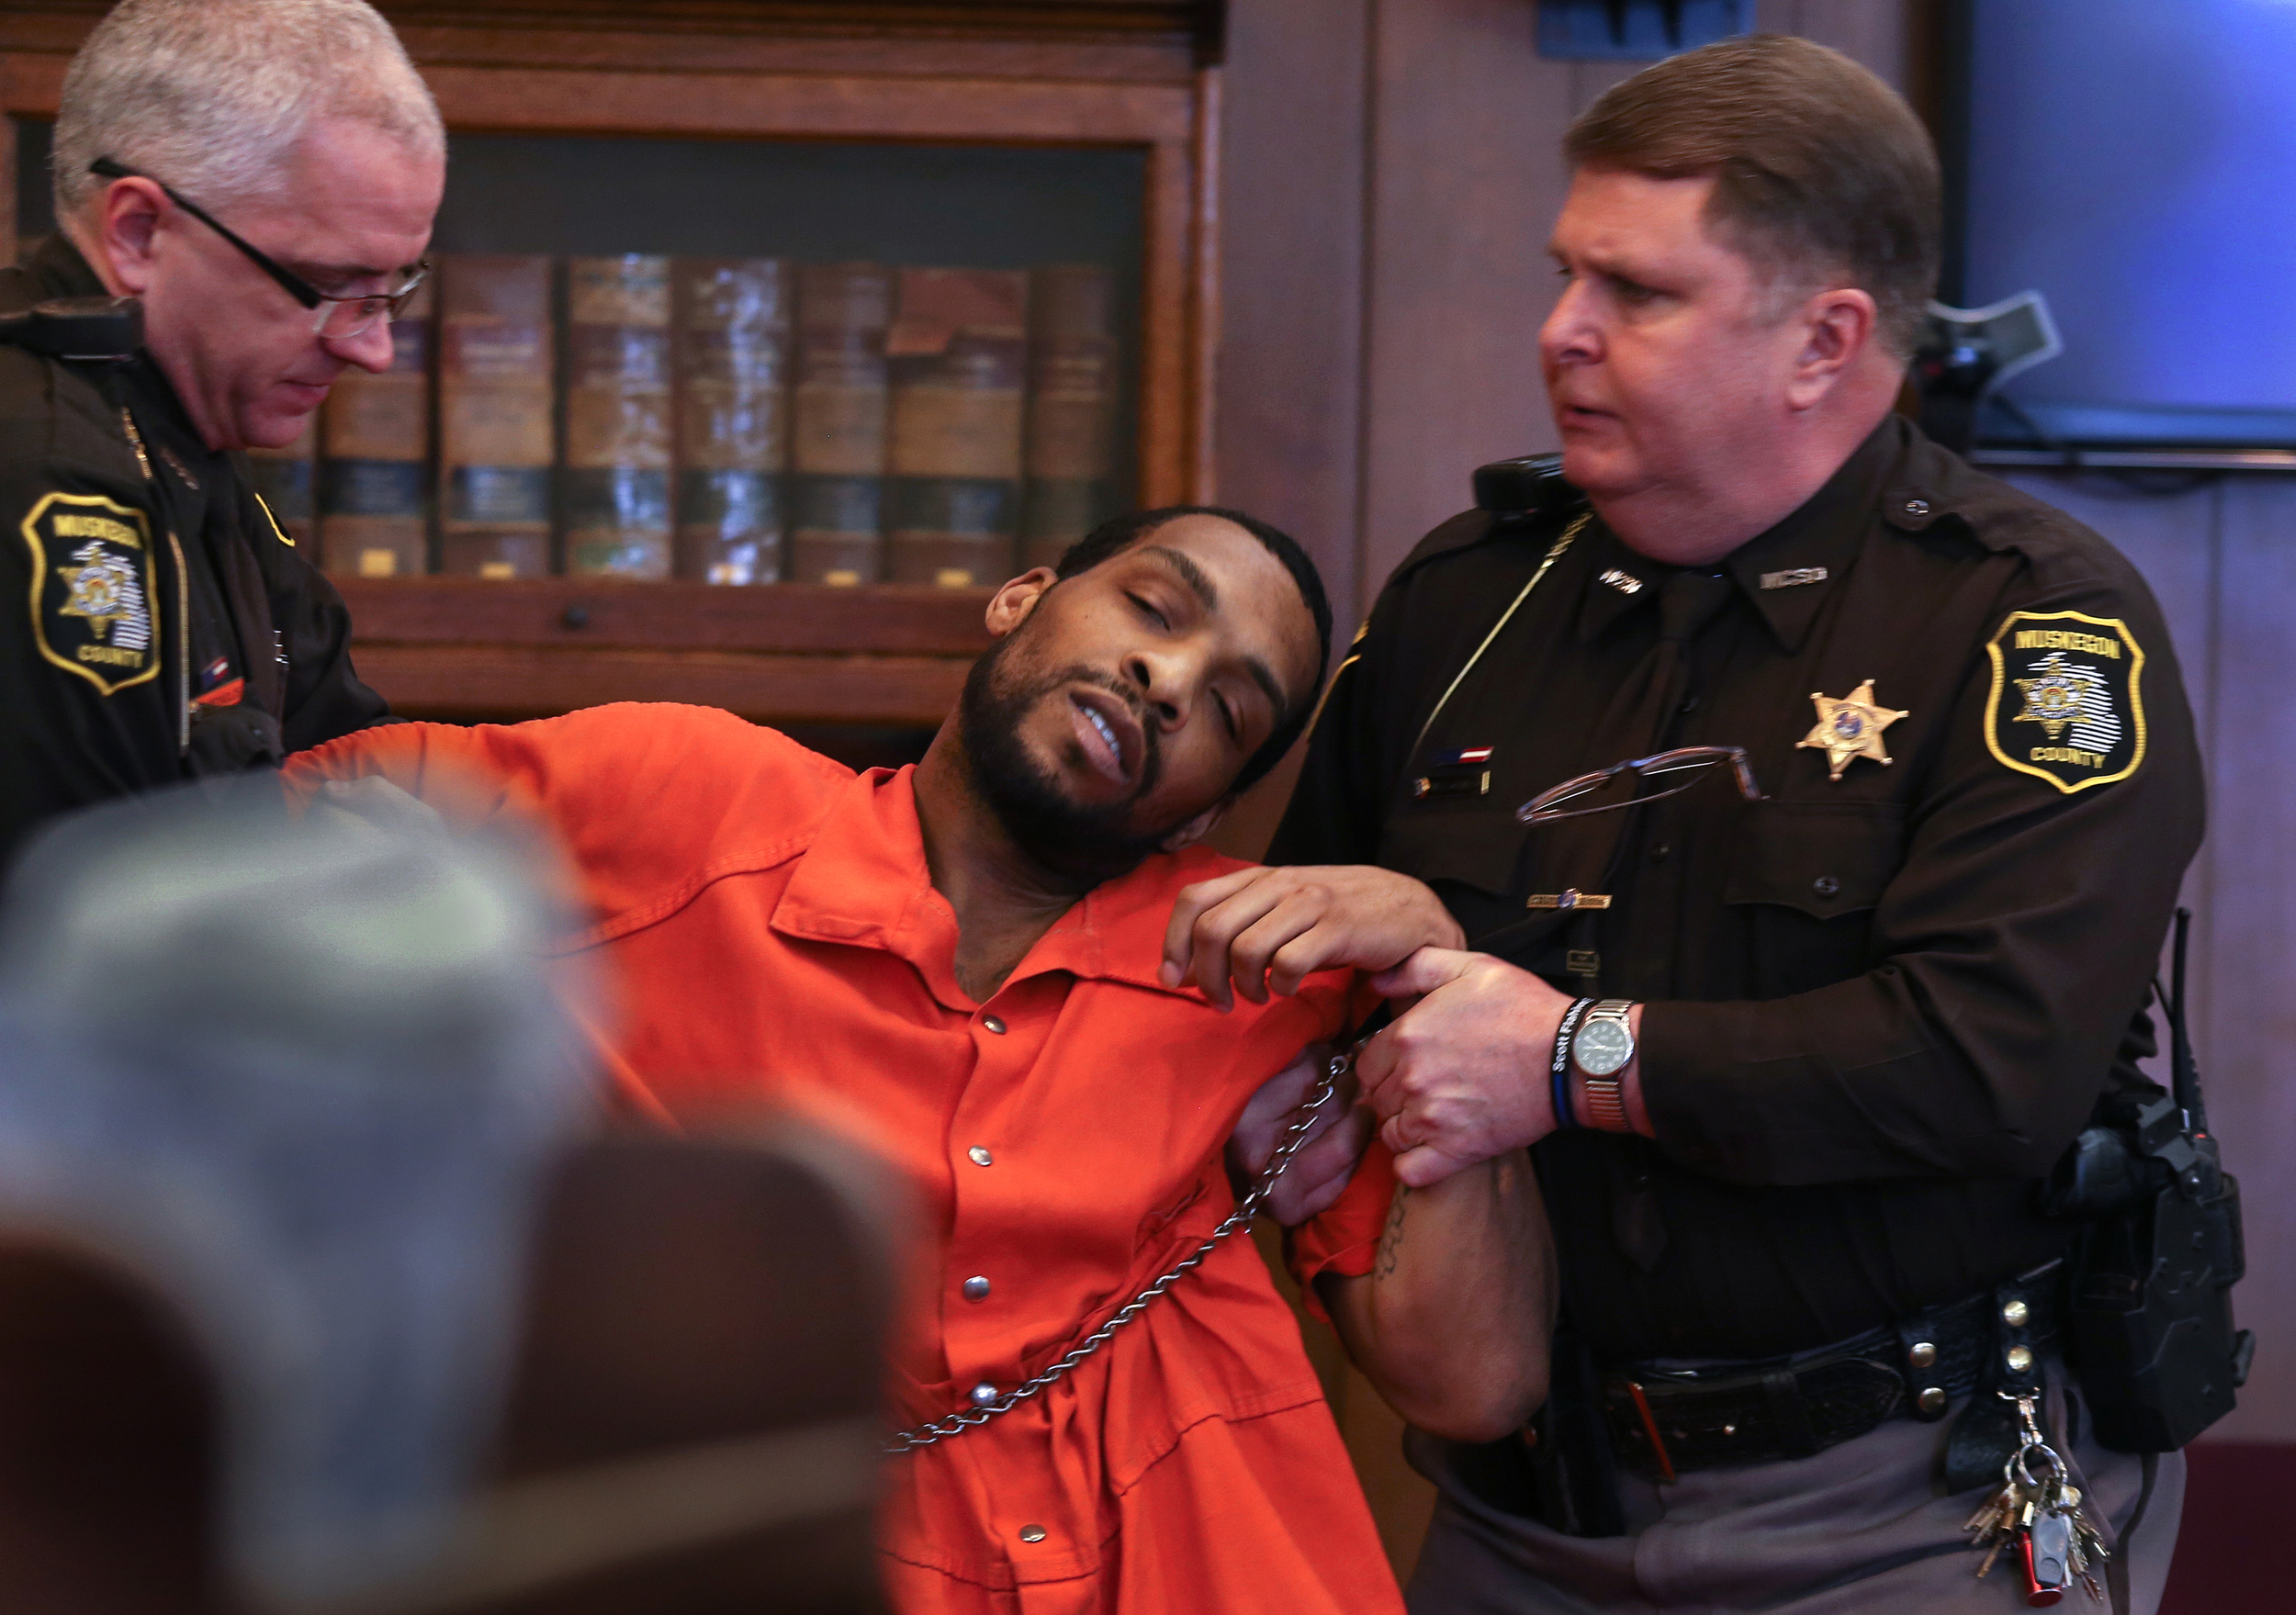 Robert Gee collapses in court Thursday, Feb. 26, 2015, after learning of his convictions before Judge Timothy G. Hicks during his bench trial in Muskegon County's 14th Circuit Court. Gee is charged with first-degree premeditated murder in the shooting death of 26-year-old motorcyclist, Jacob Rameau, last June in Muskegon Heights, Mich.